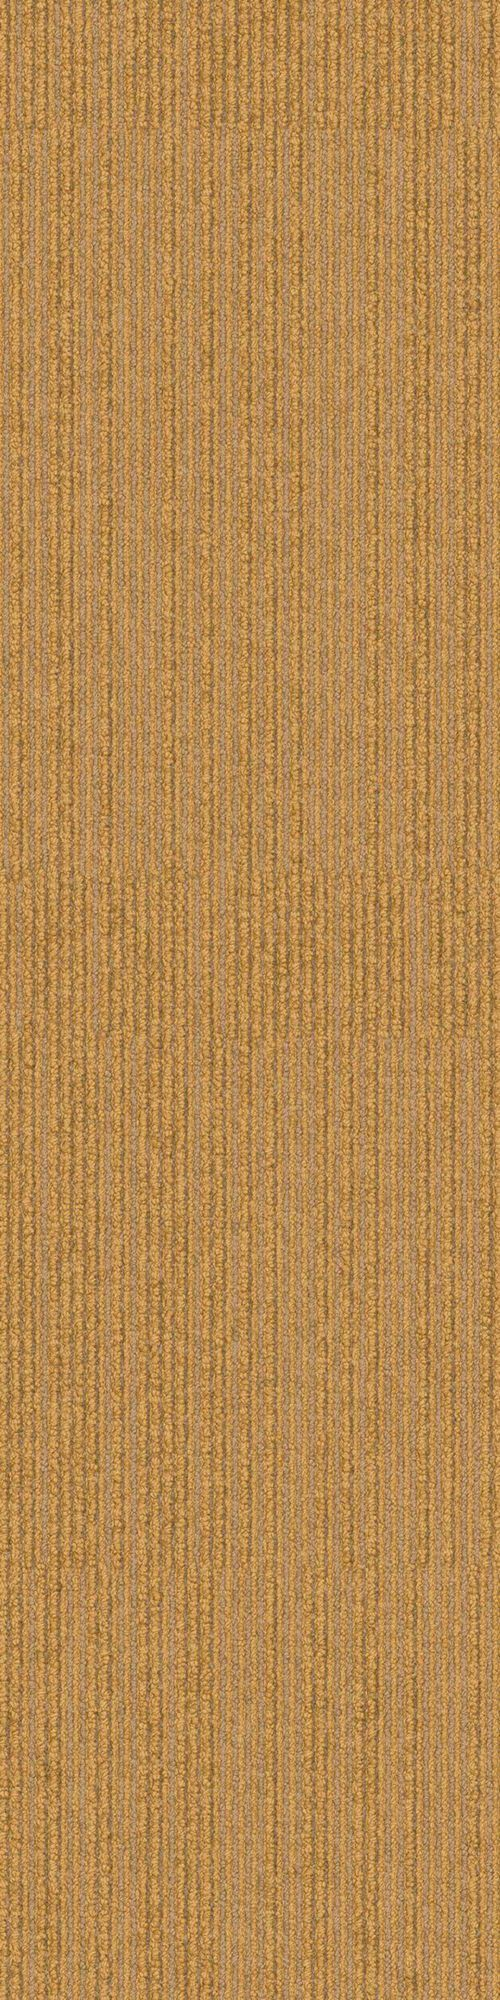 Interface carpet tile: On Line Color name: Canary Variant 2